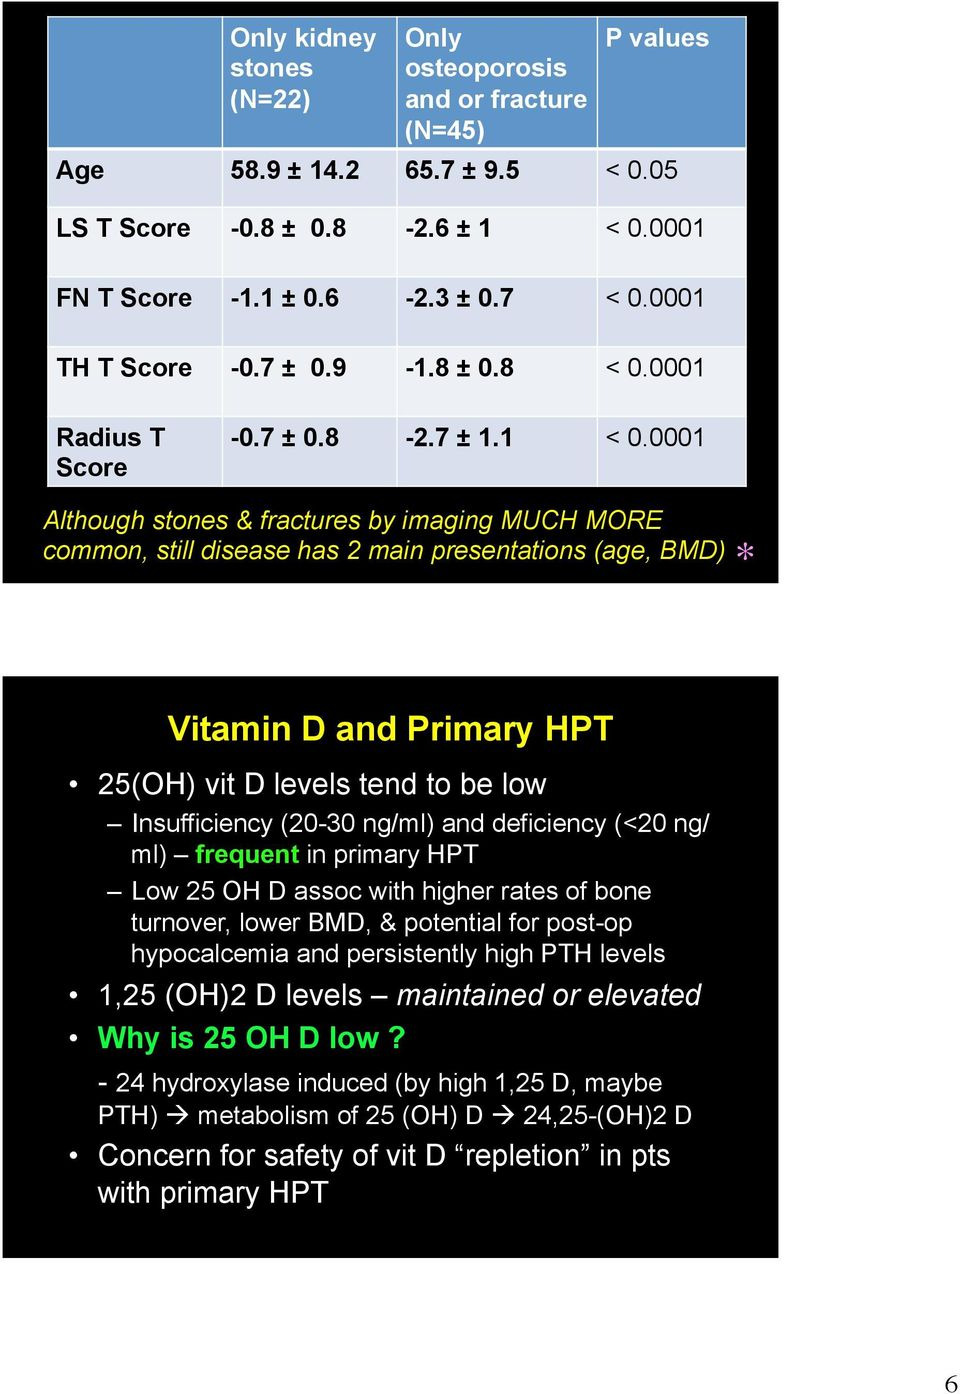 0001 Although stones & fractures by imaging MUCH MORE common, still disease has 2 main presentations (age, BMD) * Vitamin D and Primary HPT 25(OH) vit D levels tend to be low Insufficiency (20-30